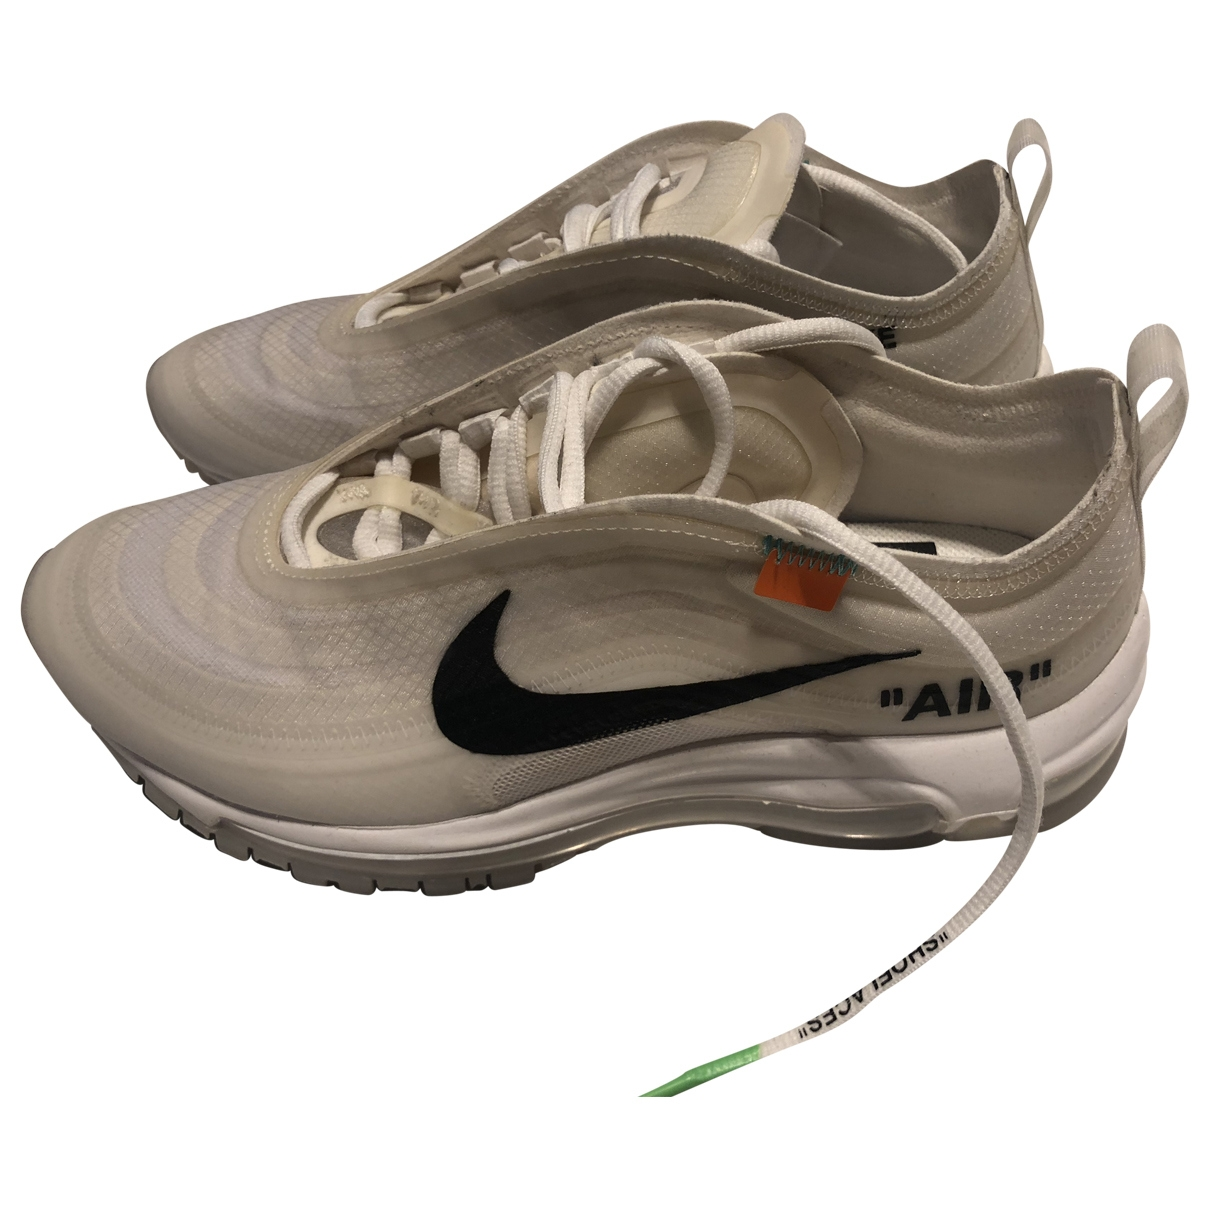 Nike X Off-white Air max 97 White Cloth Trainers for Women 5 UK